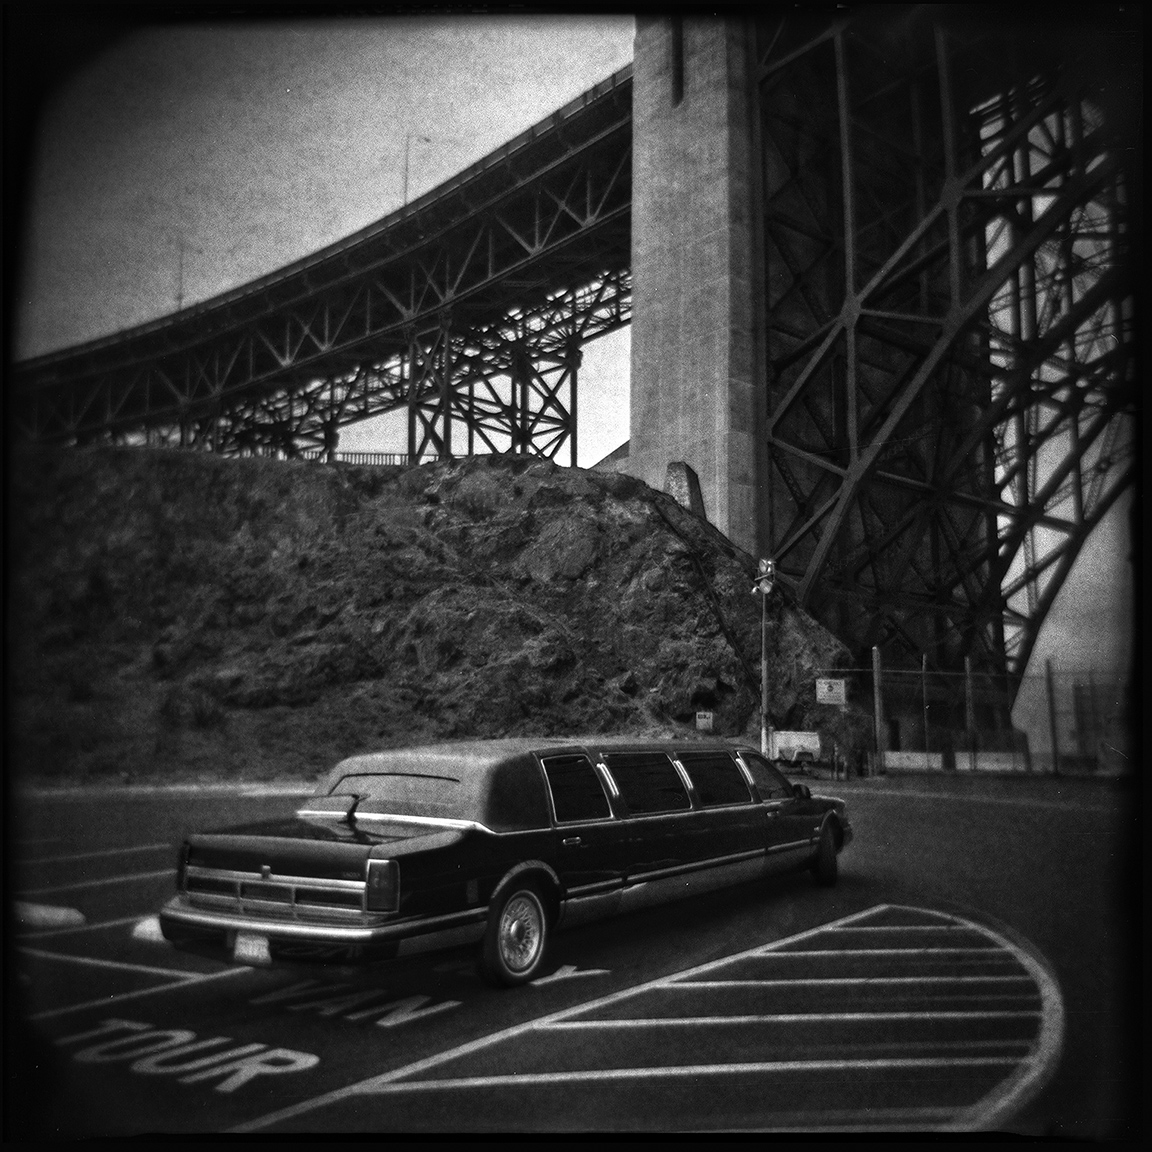 21-SF-HOLGA-WEBSITE-060314